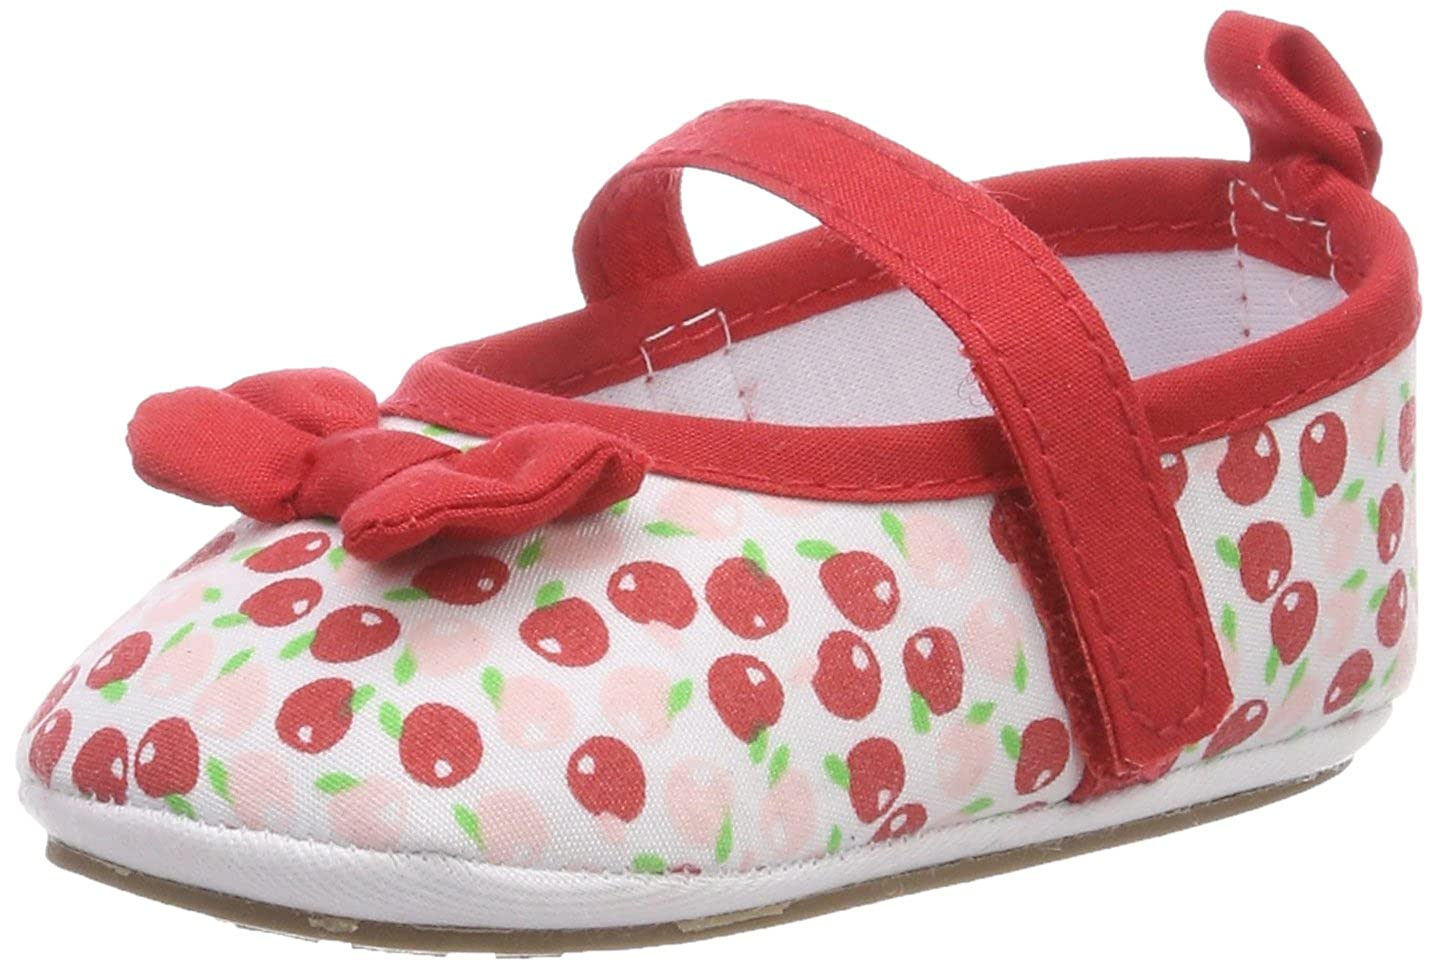 Baby-Ballerina Walking Shoes Red Size